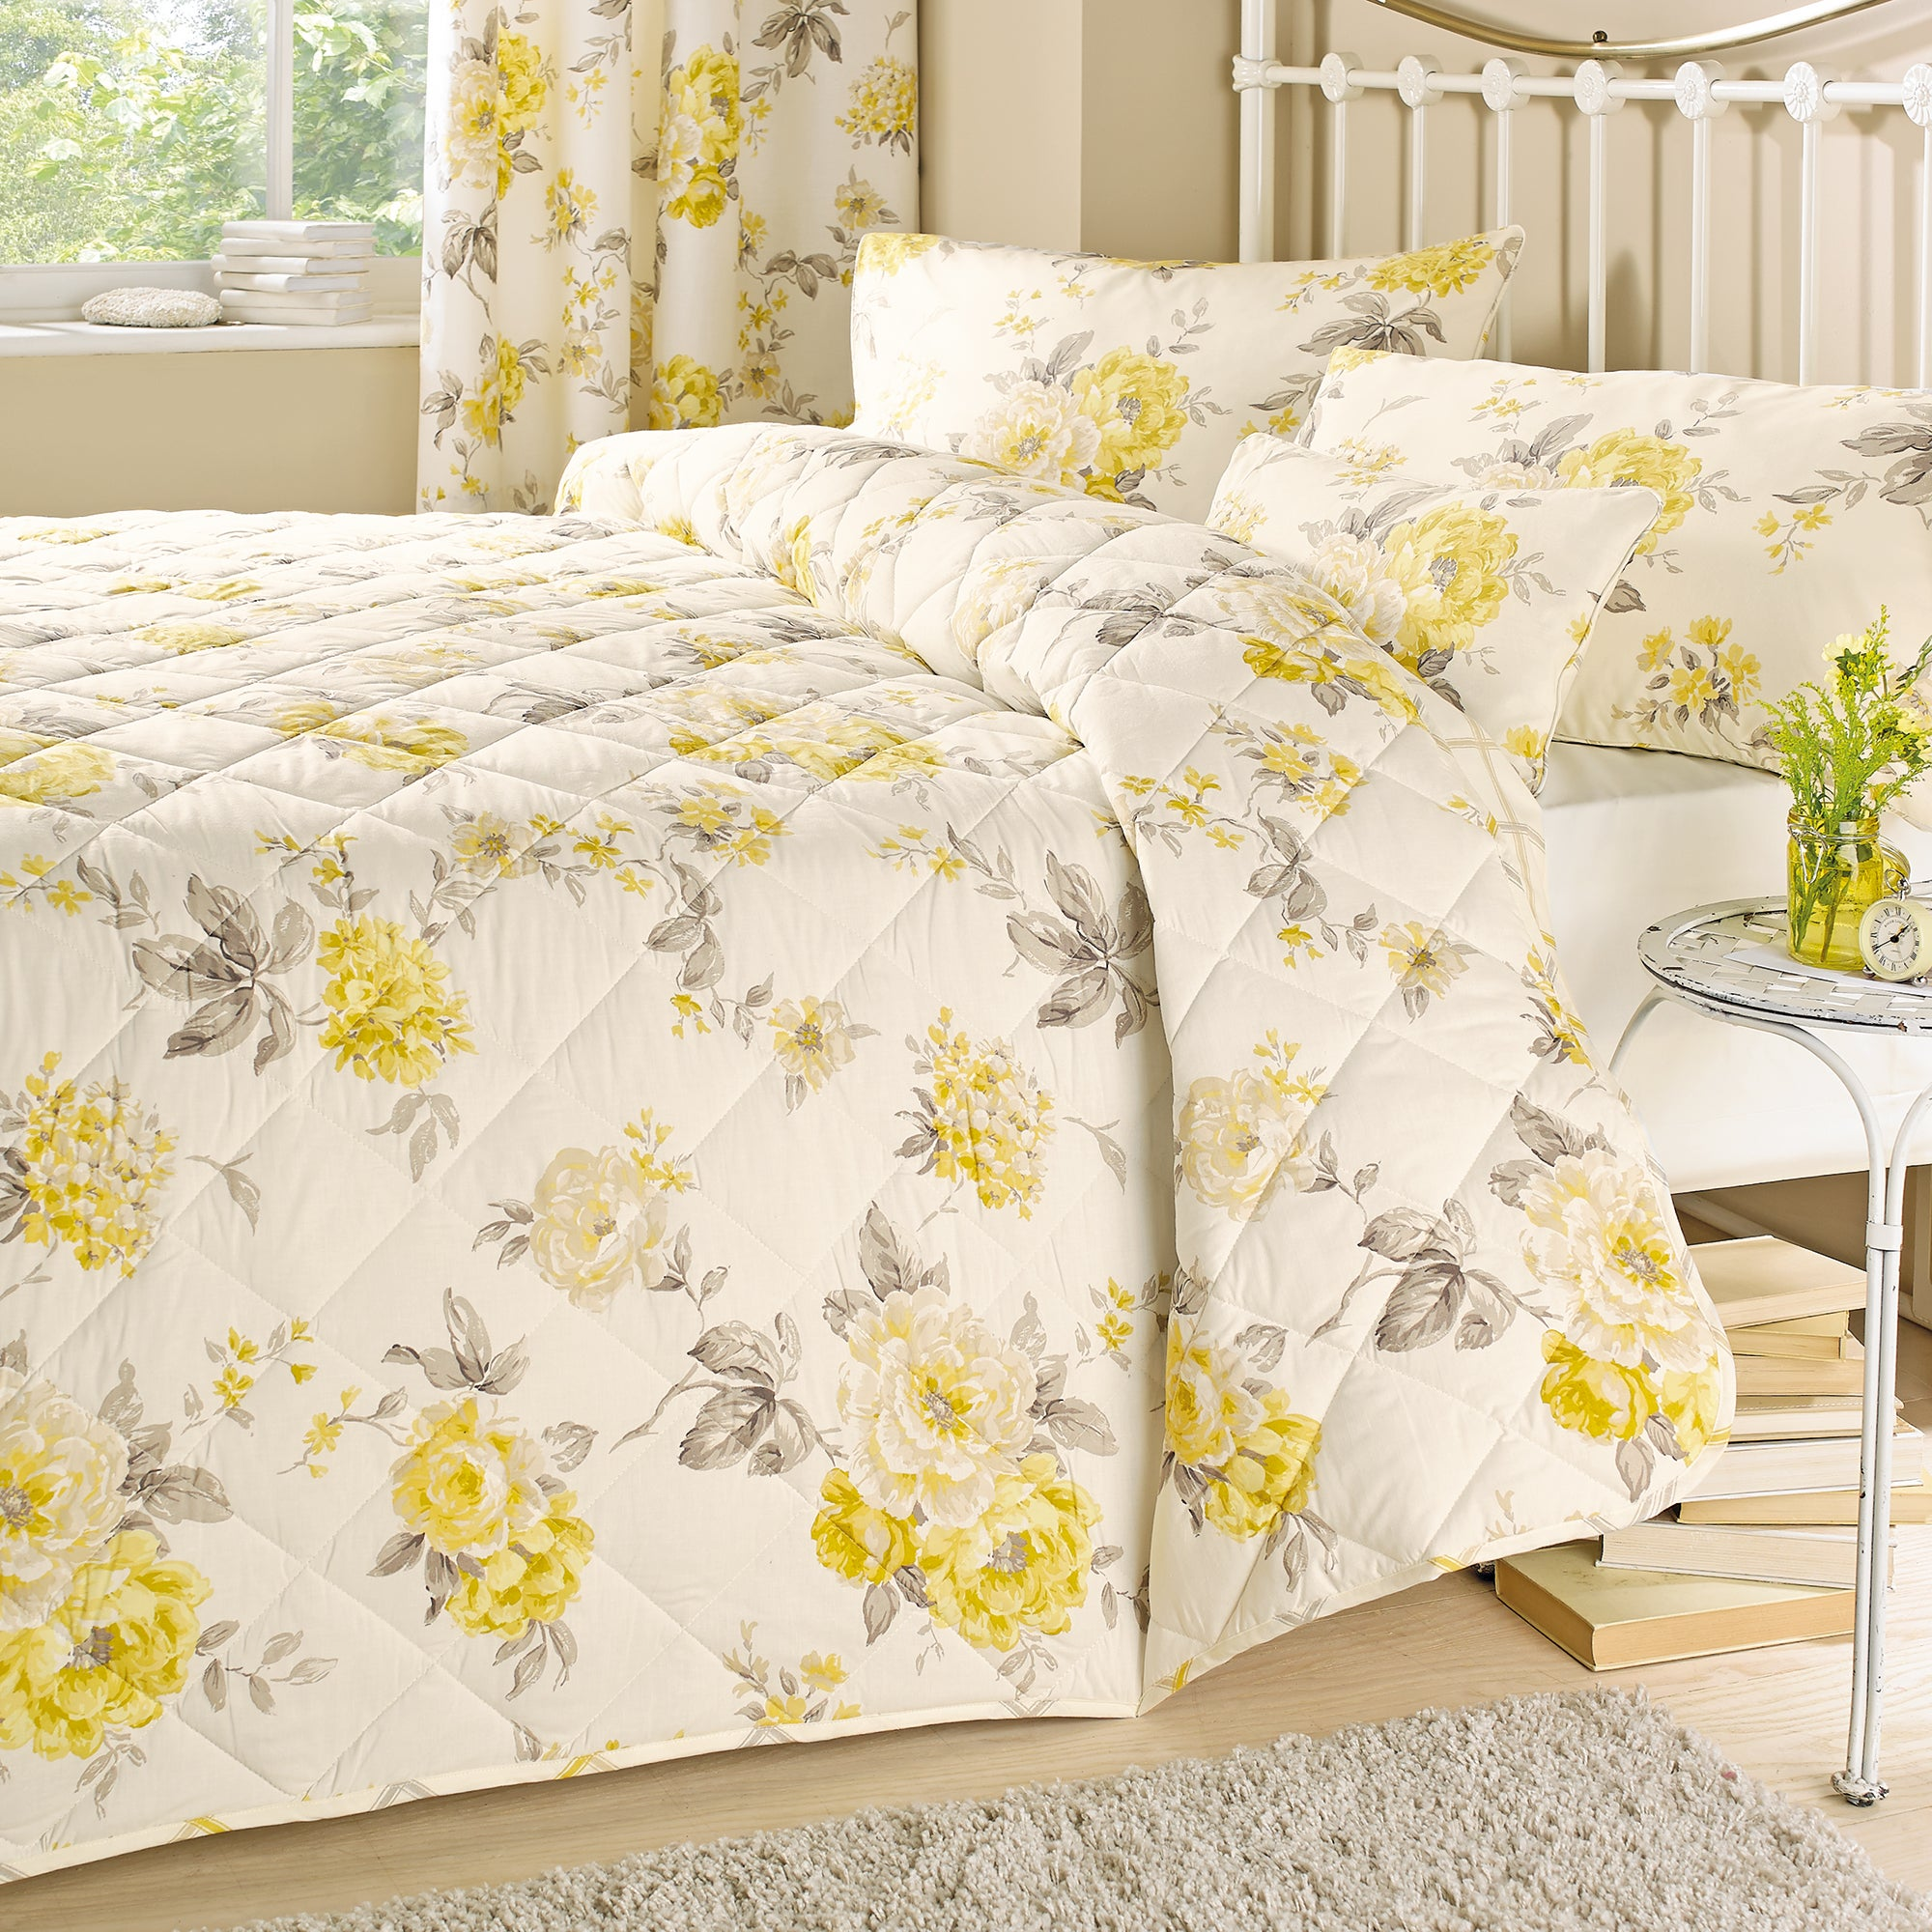 Lemon Windermere Collection Bedspread